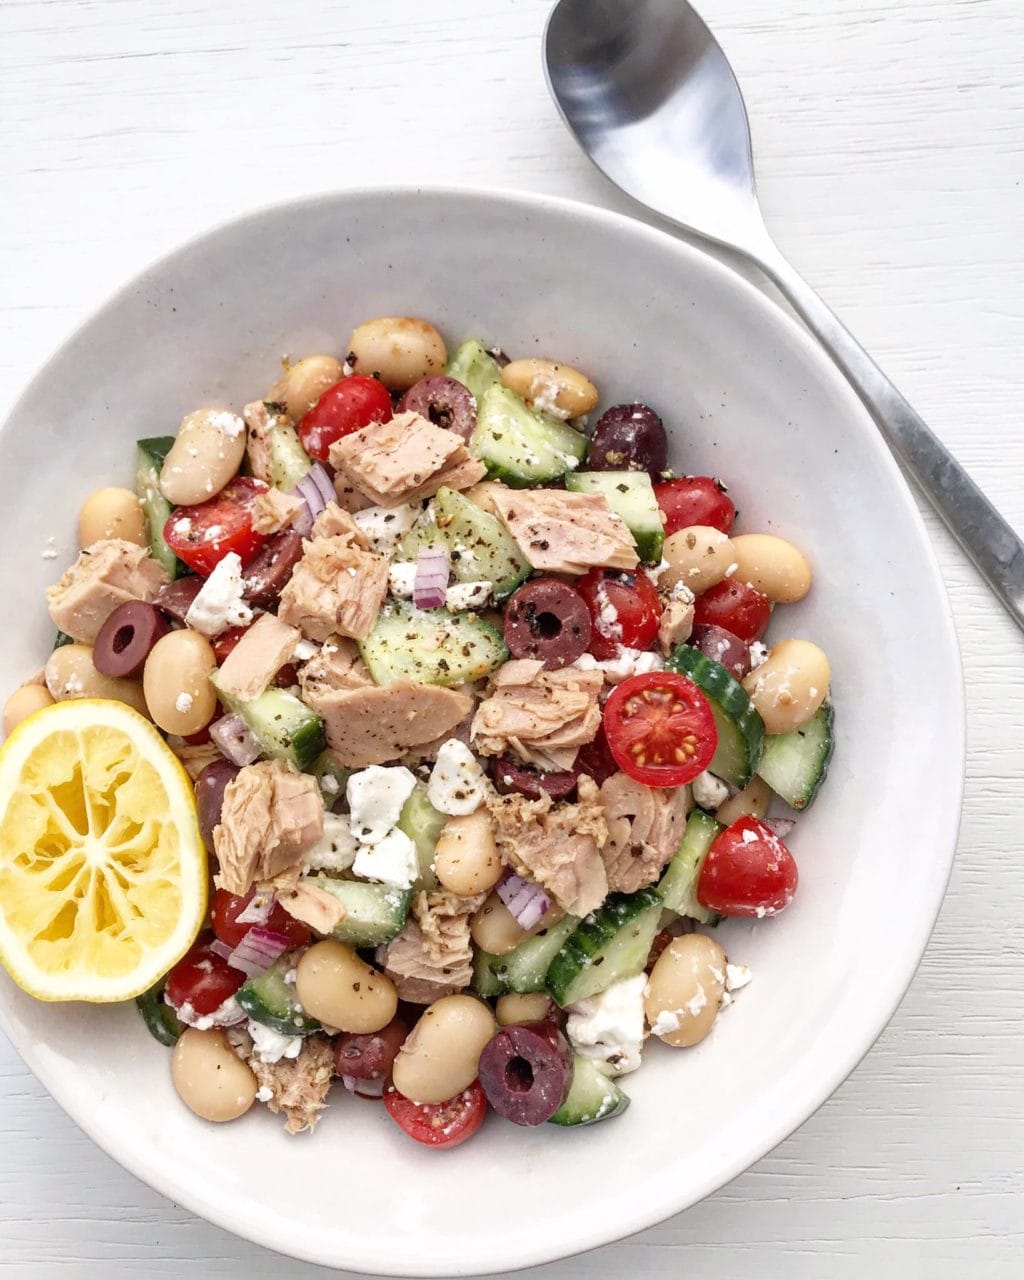 Tuna Greek-style salad with olives and feta in a bowl.